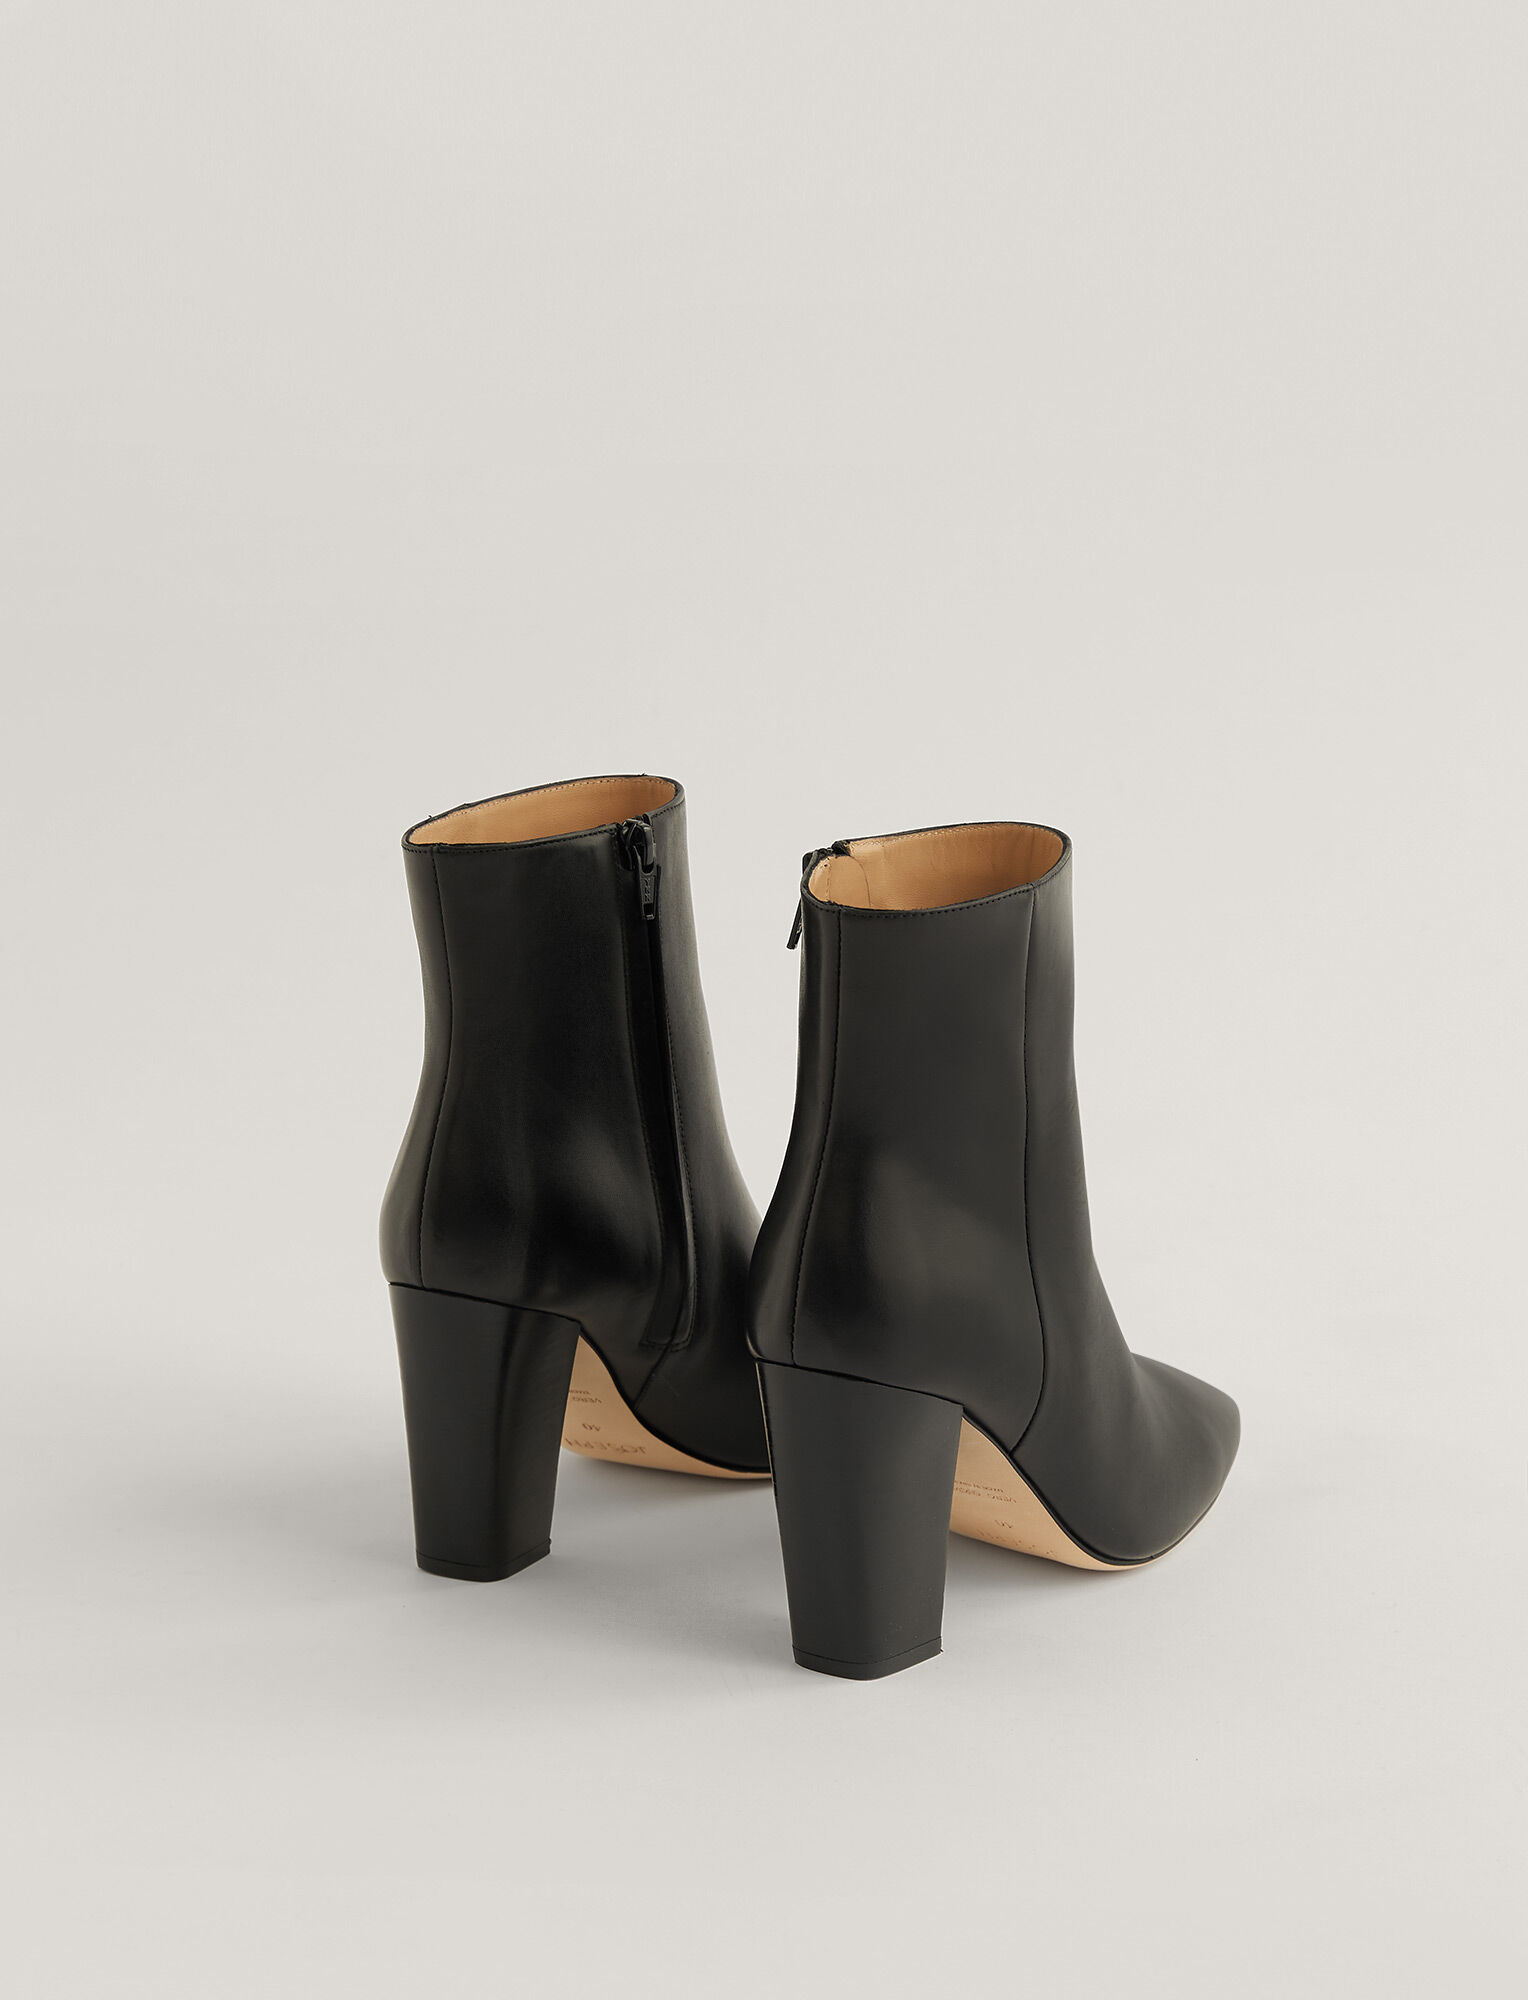 Joseph, Square Heel Ankle Boots, in Black